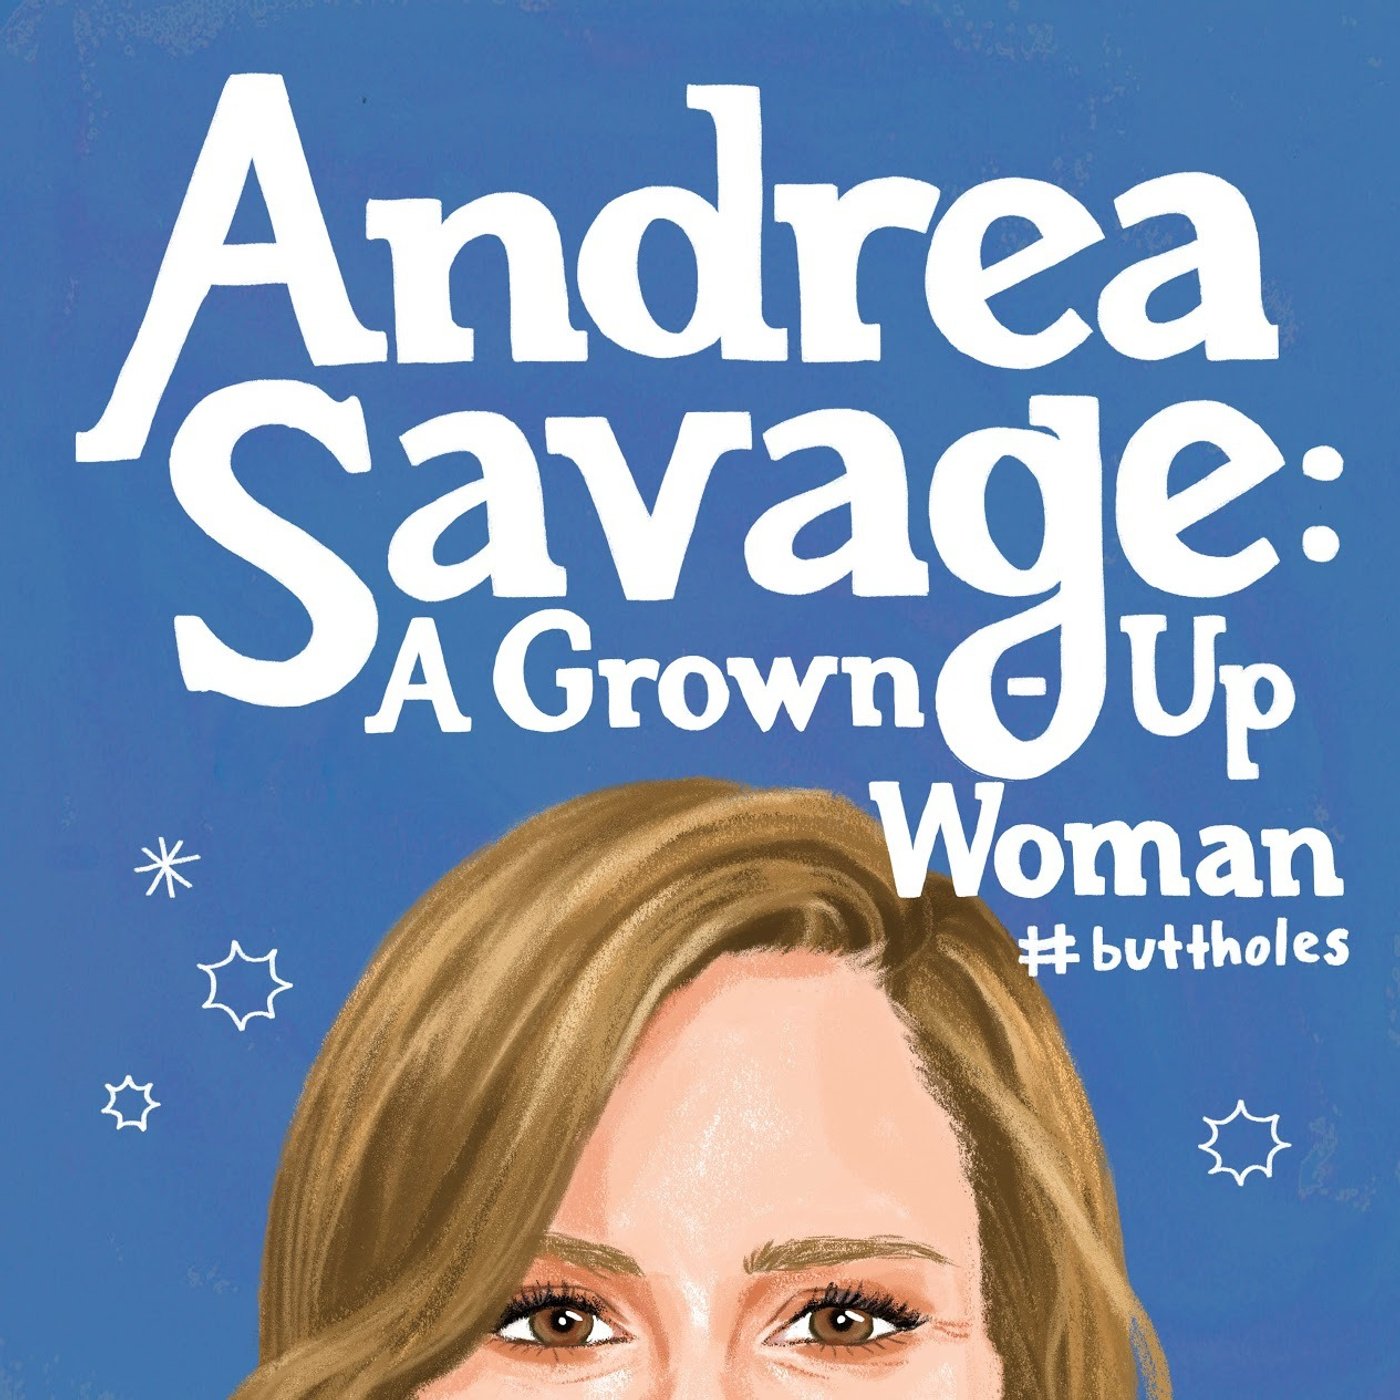 Andrea Savage Nude Pics andrea savage: a grown-up woman #buttholes   podbay